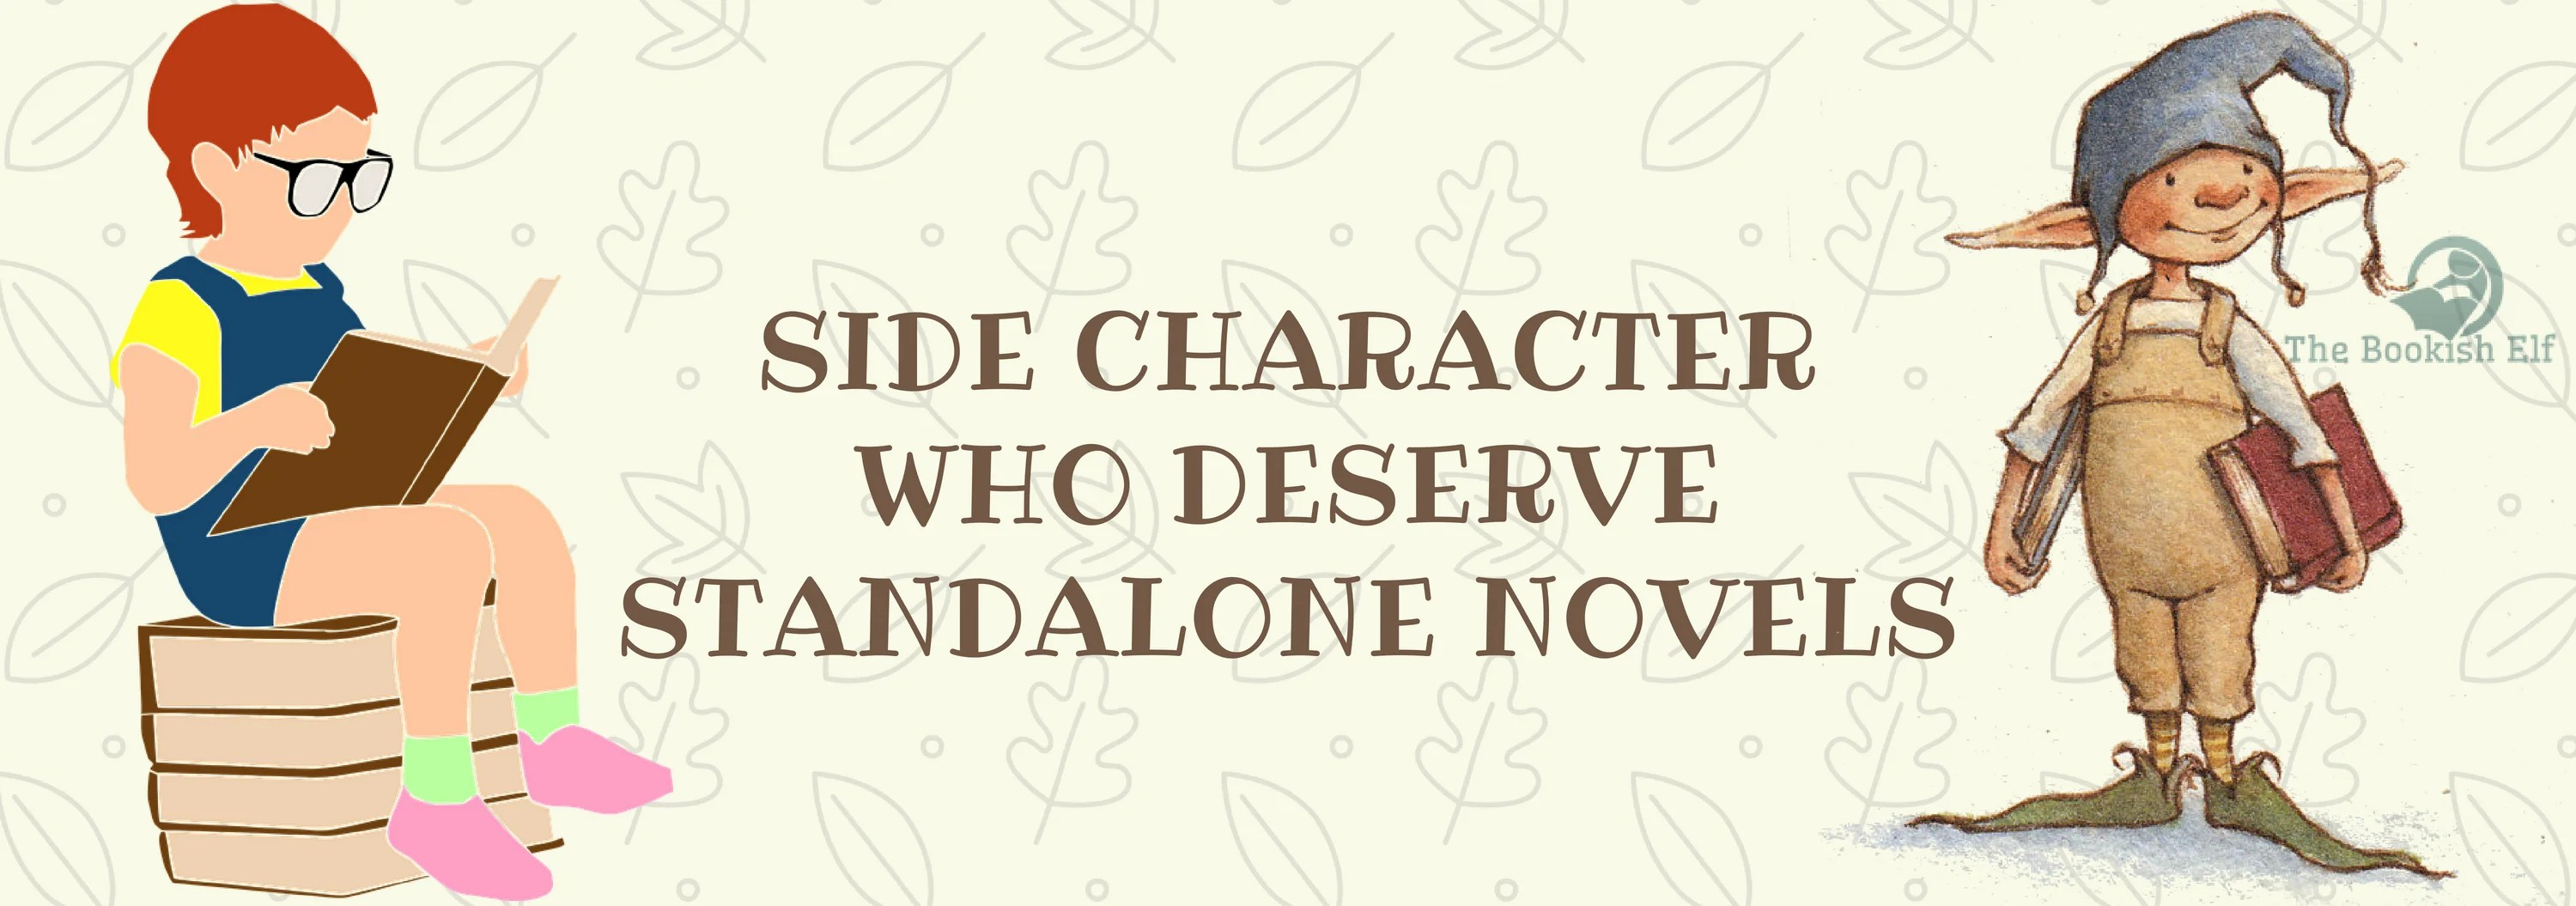 10 Side Character who deserve standalone novels